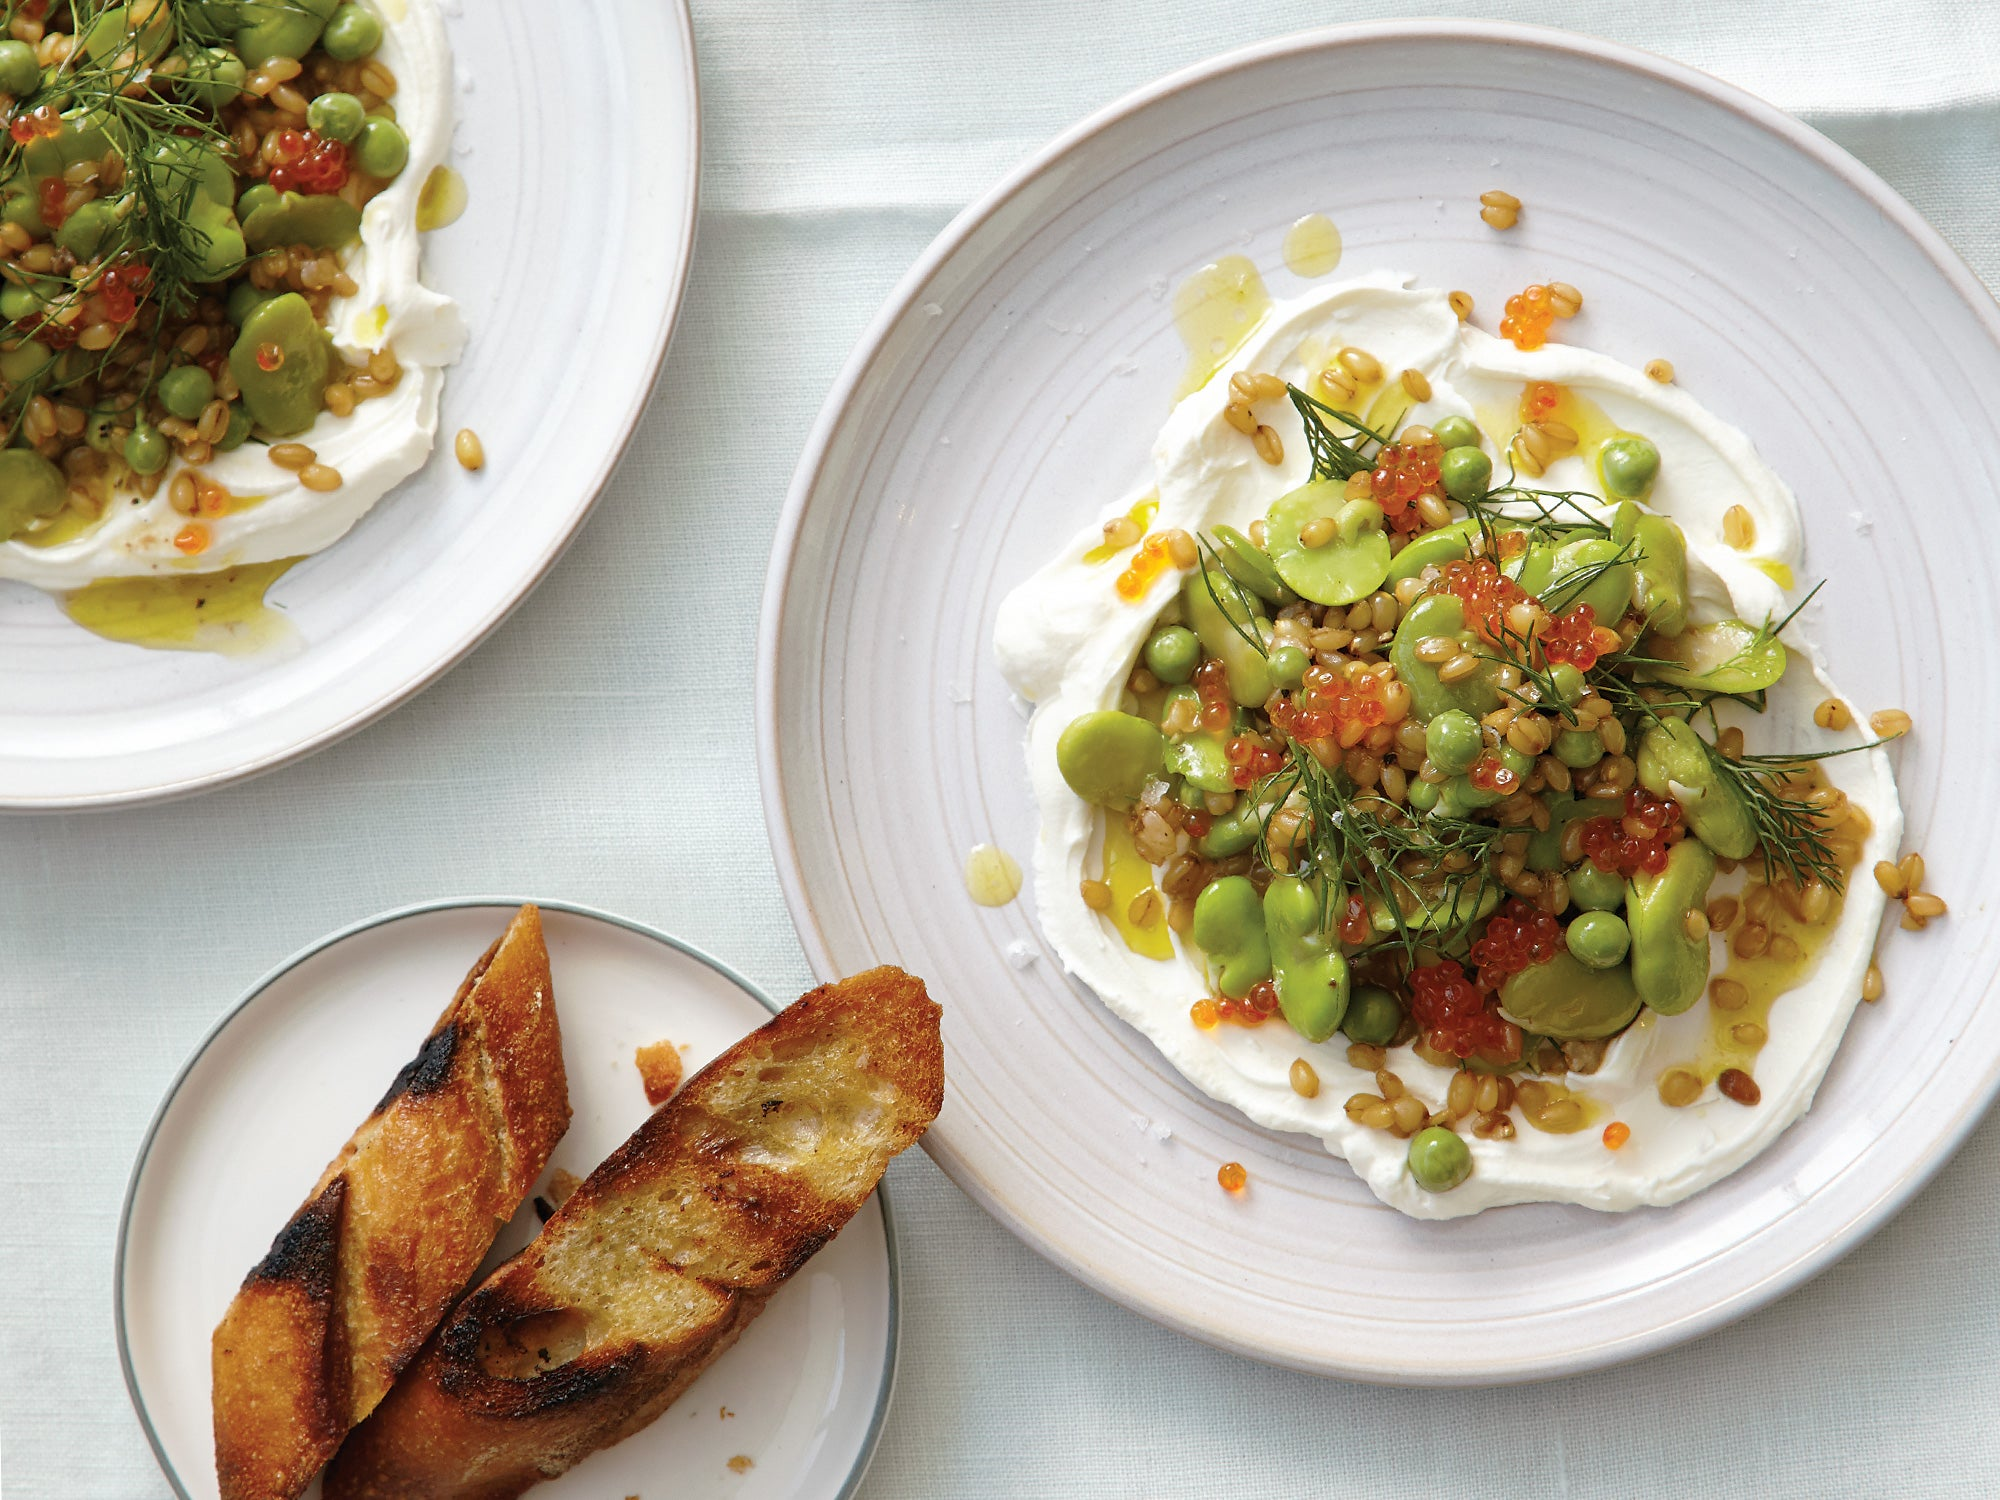 Warm Wheat Berry Salad with Fava Beans and Trout Roe